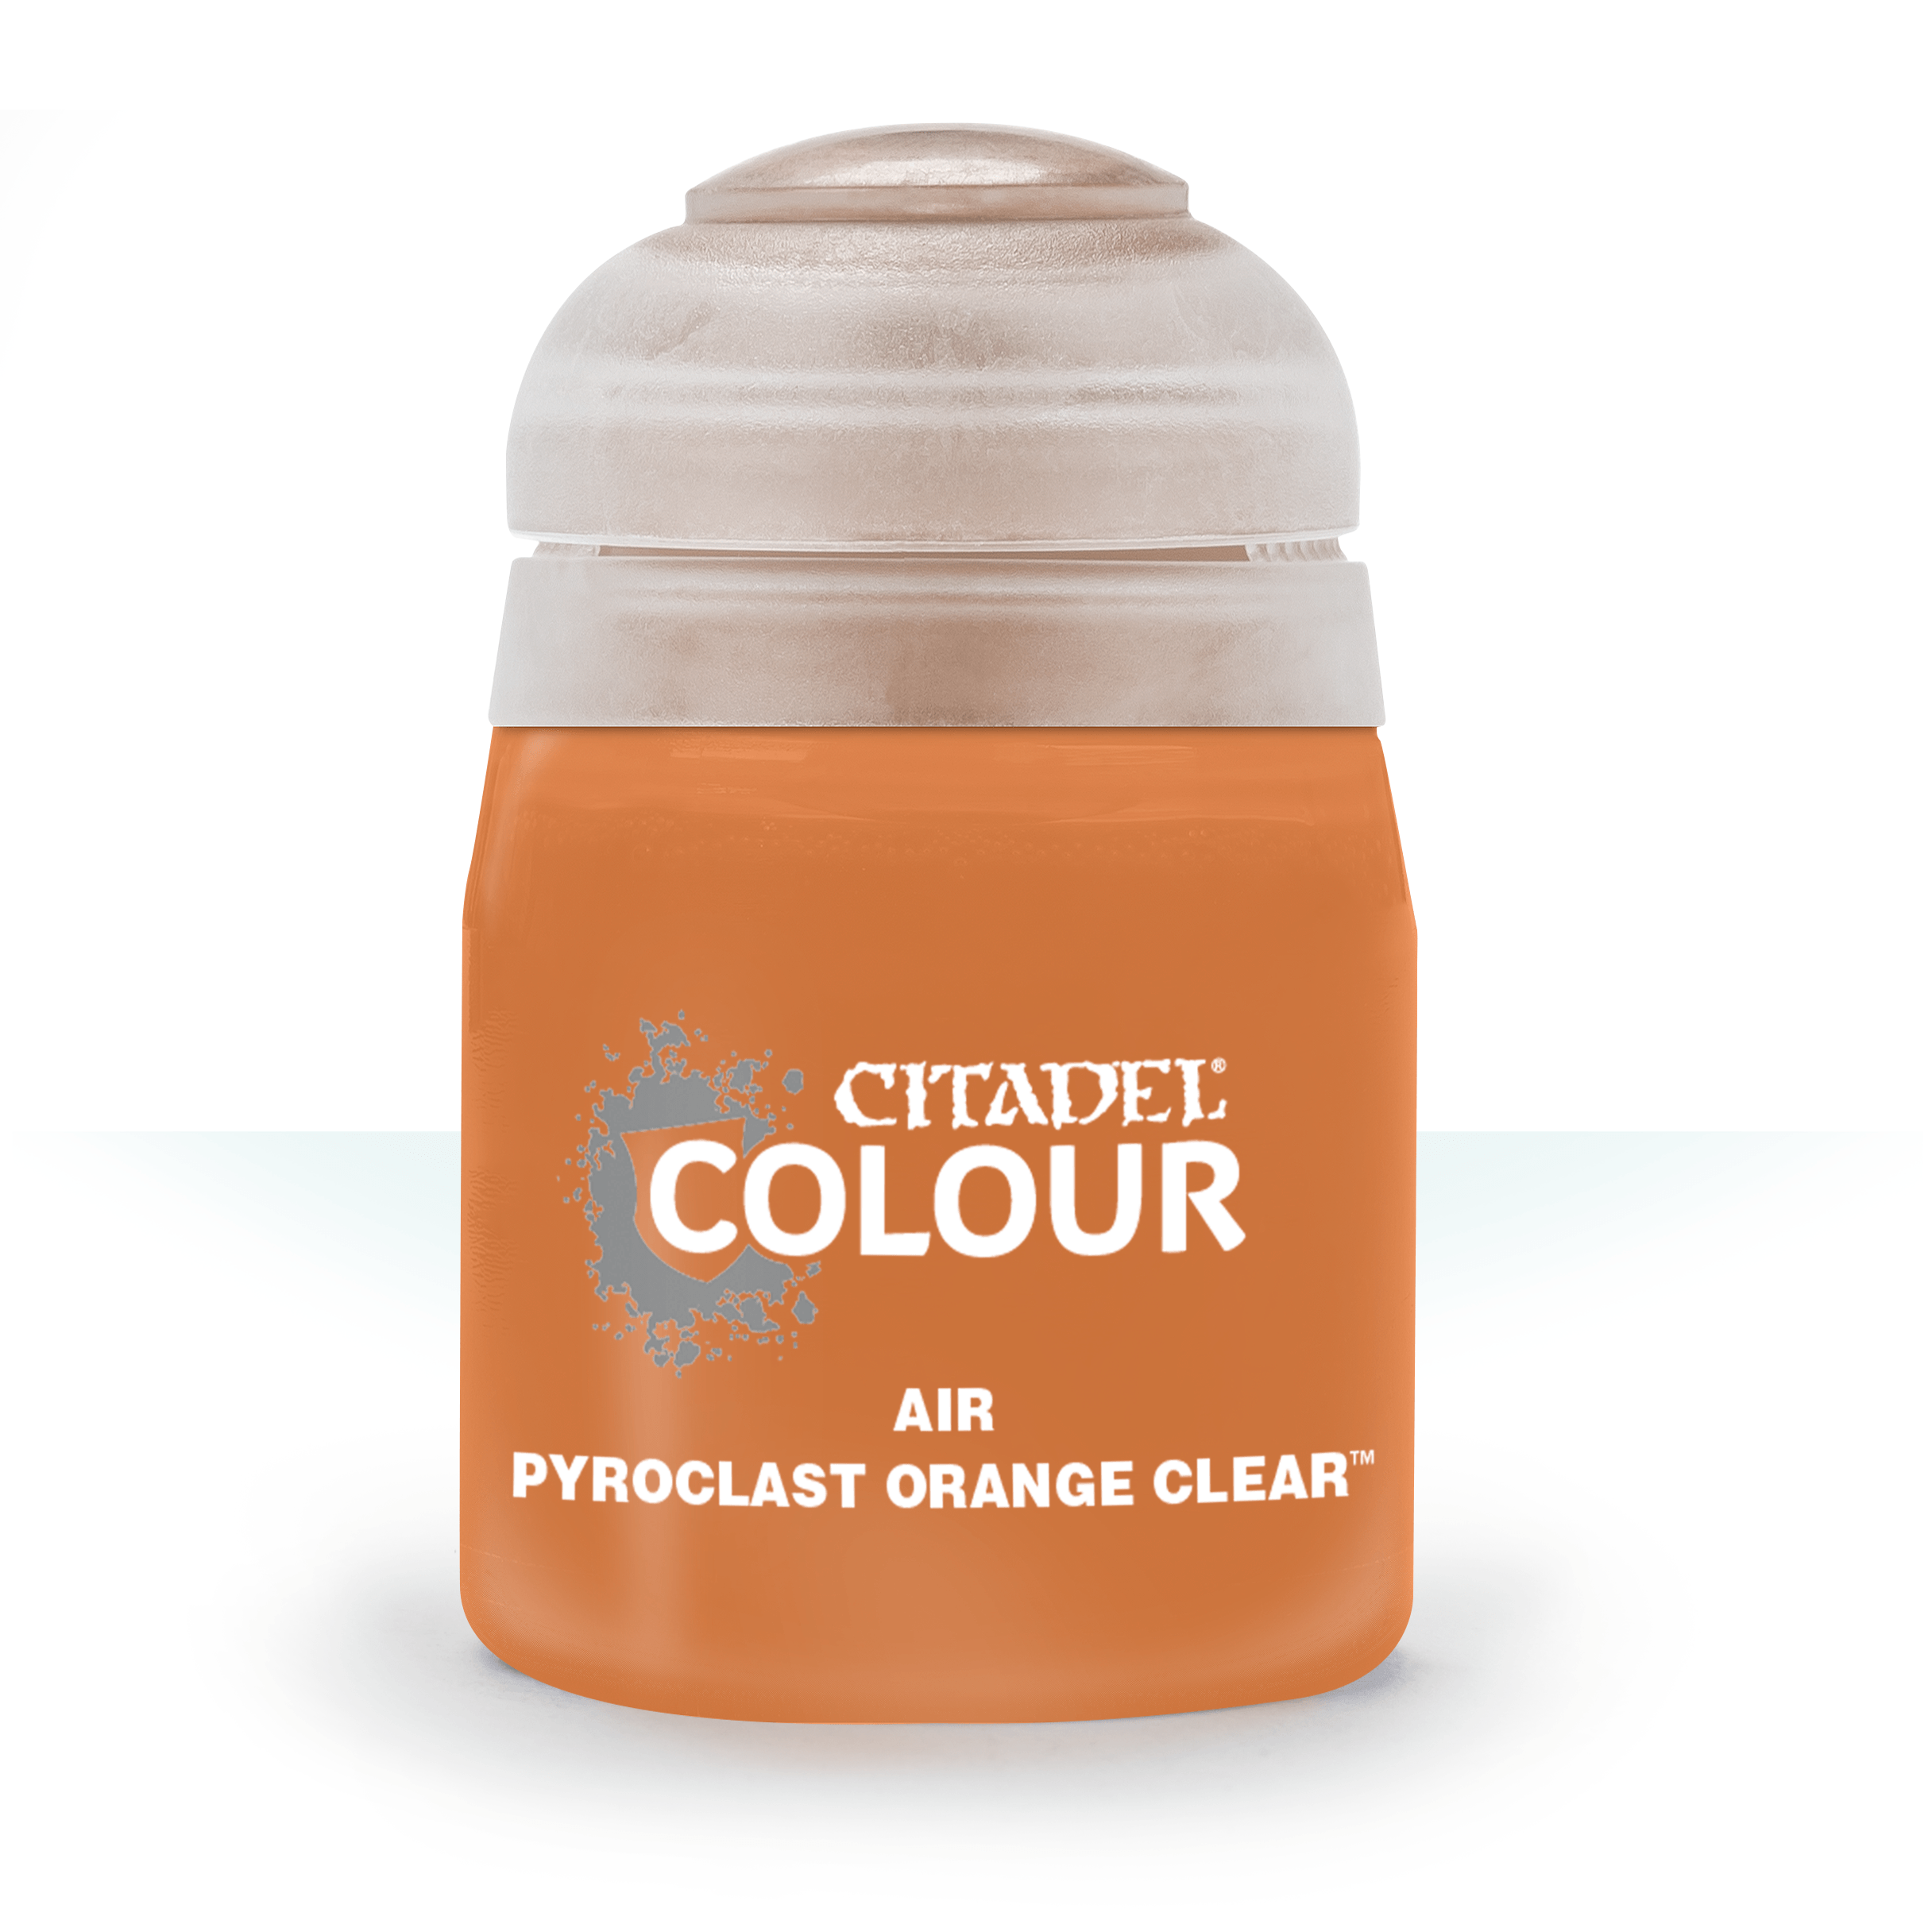 Citadel Airbrush Paints: Pyroclast Orange Clear